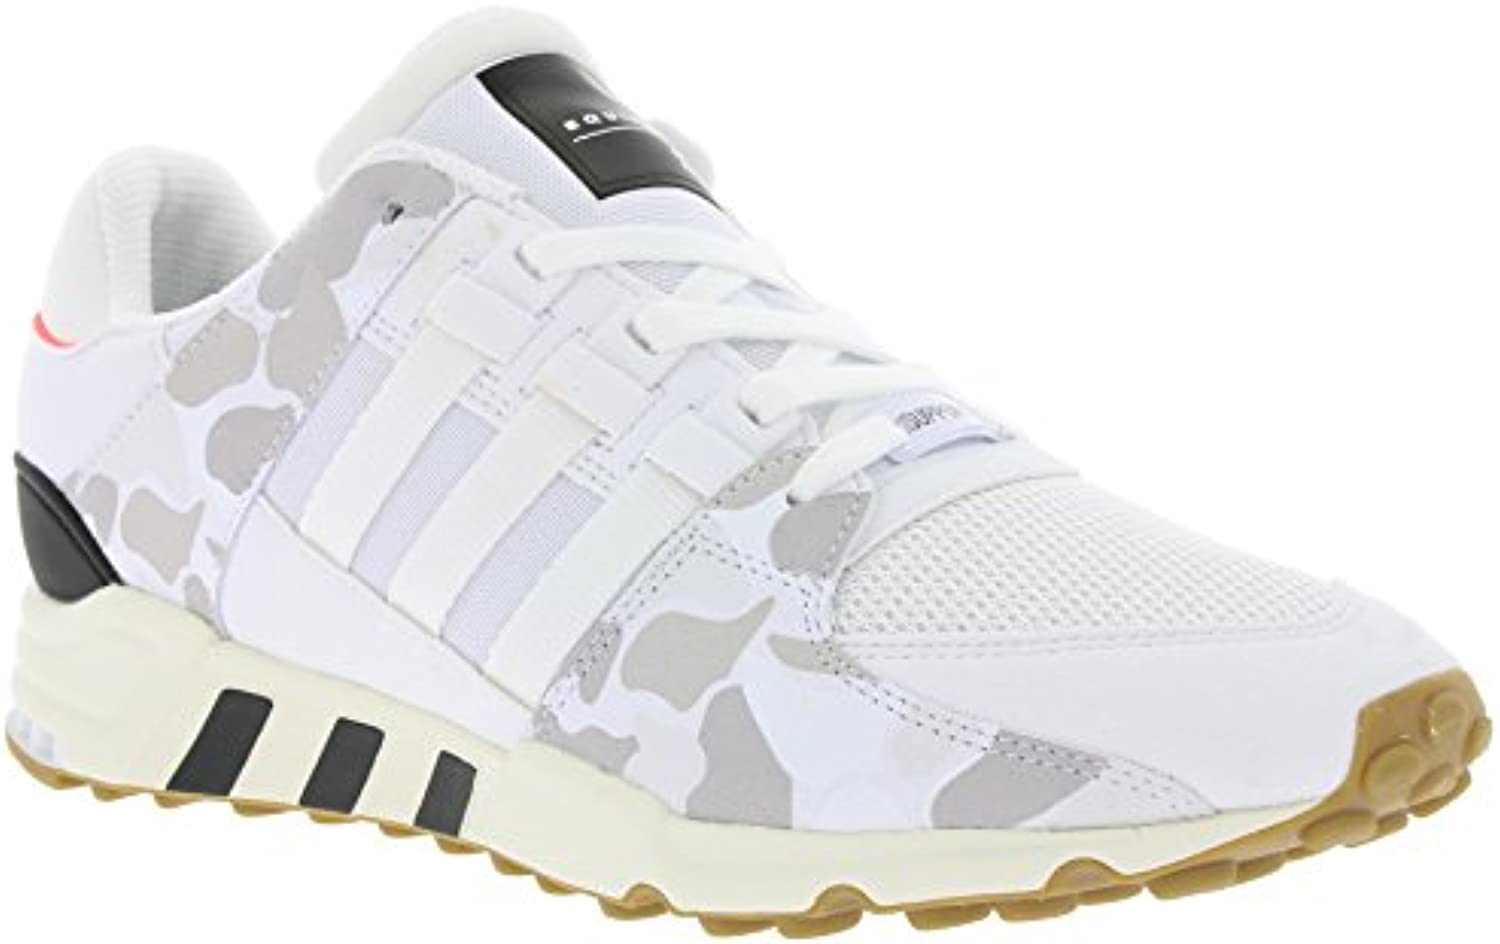 Adidas EQT Support RF Sneaker Trainer